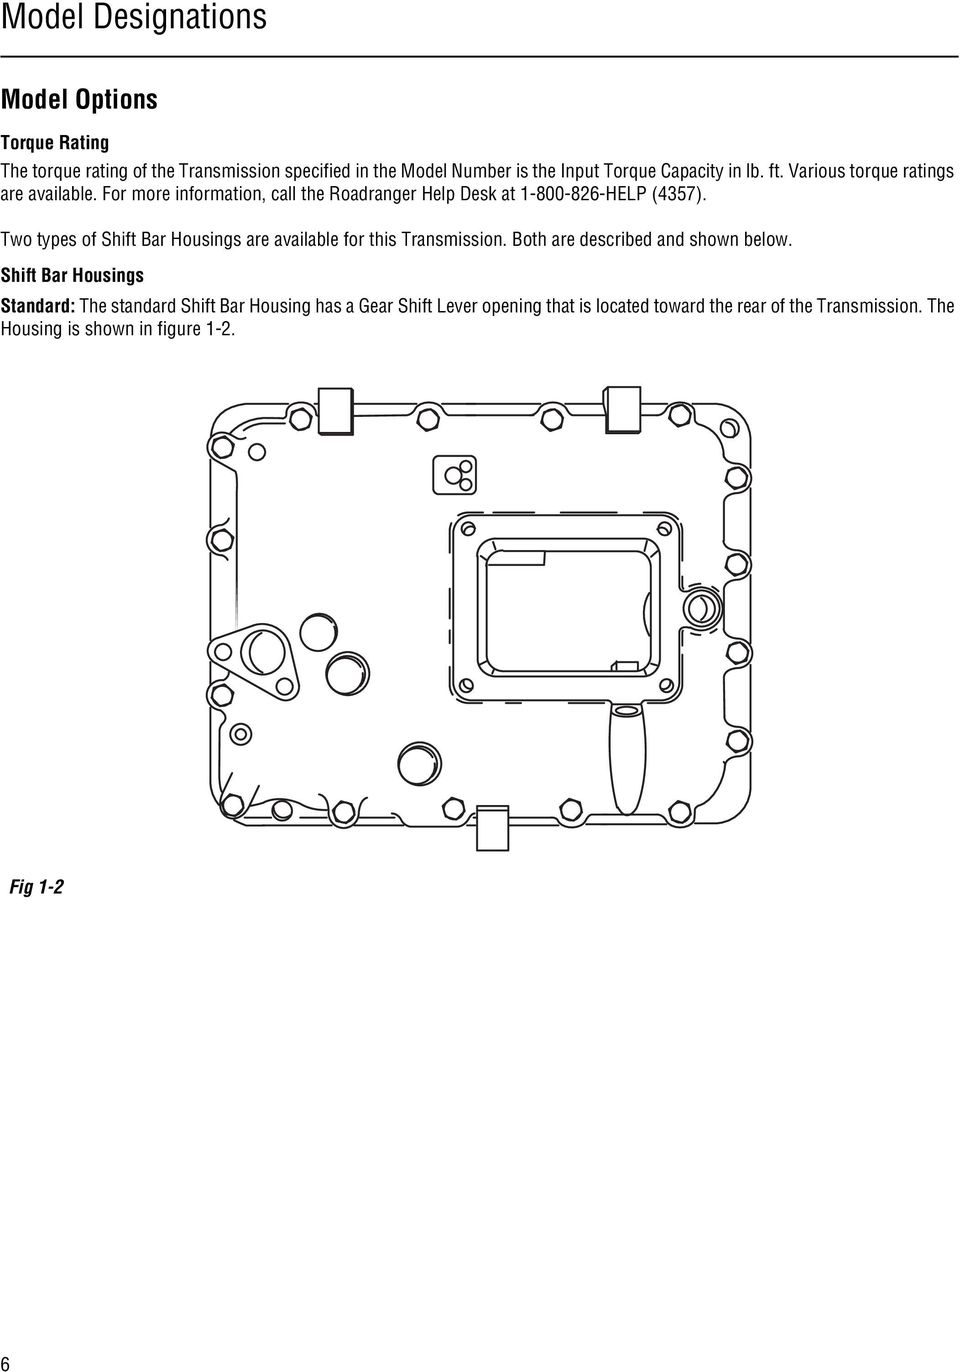 Two types of Shift Bar Housings are available for this Transmission. Both  are described and